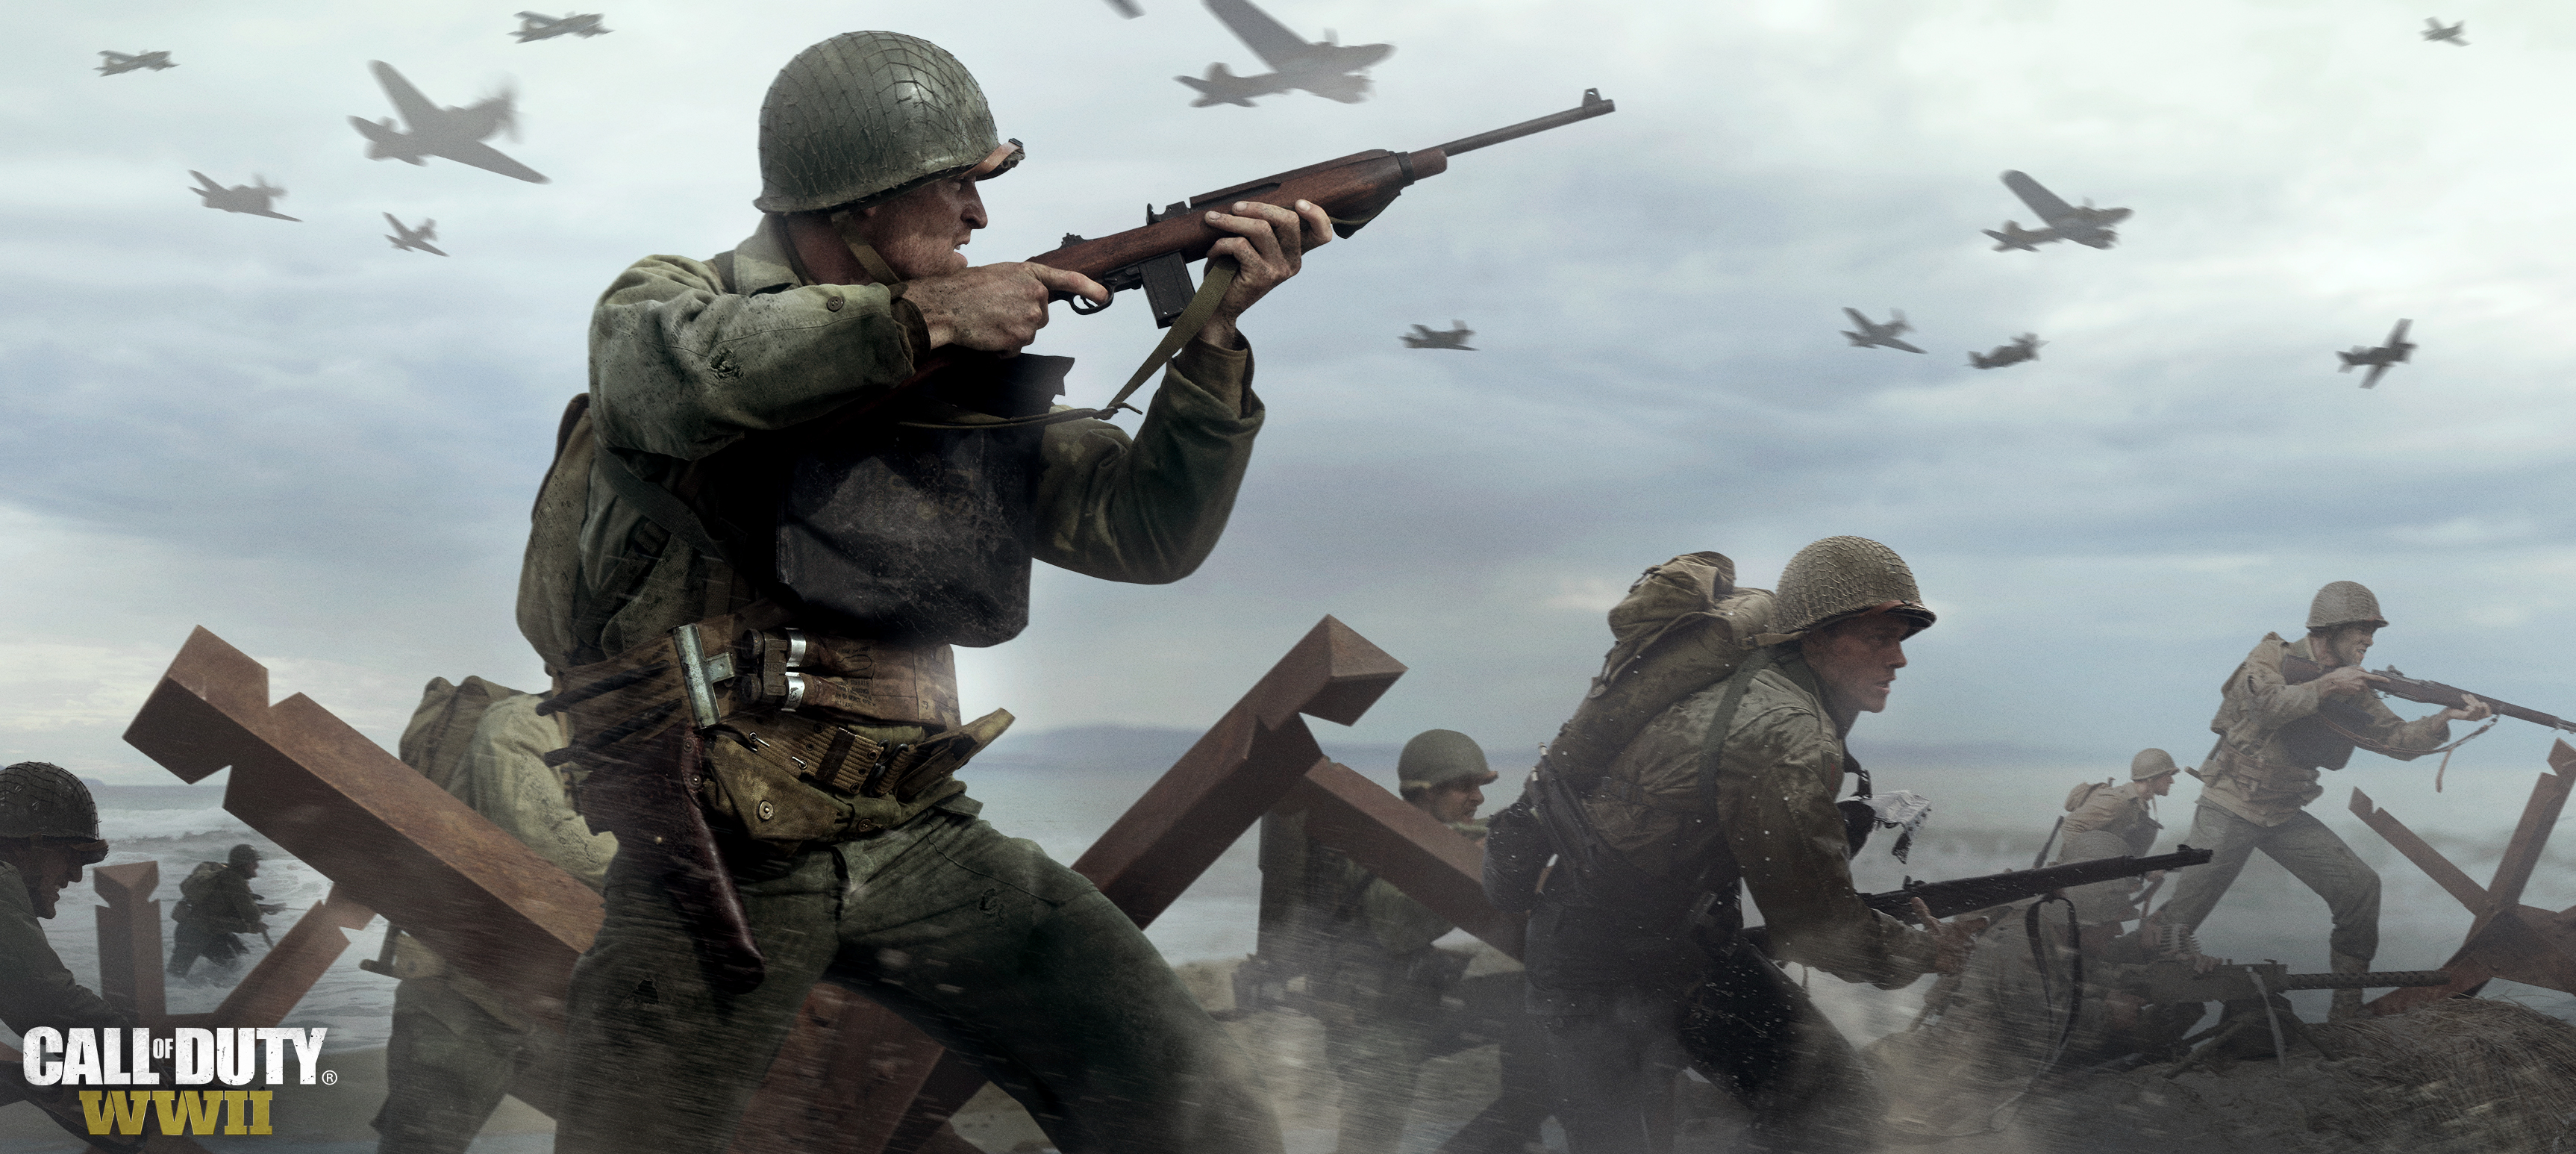 Wallpaper Call Of Duty WW2